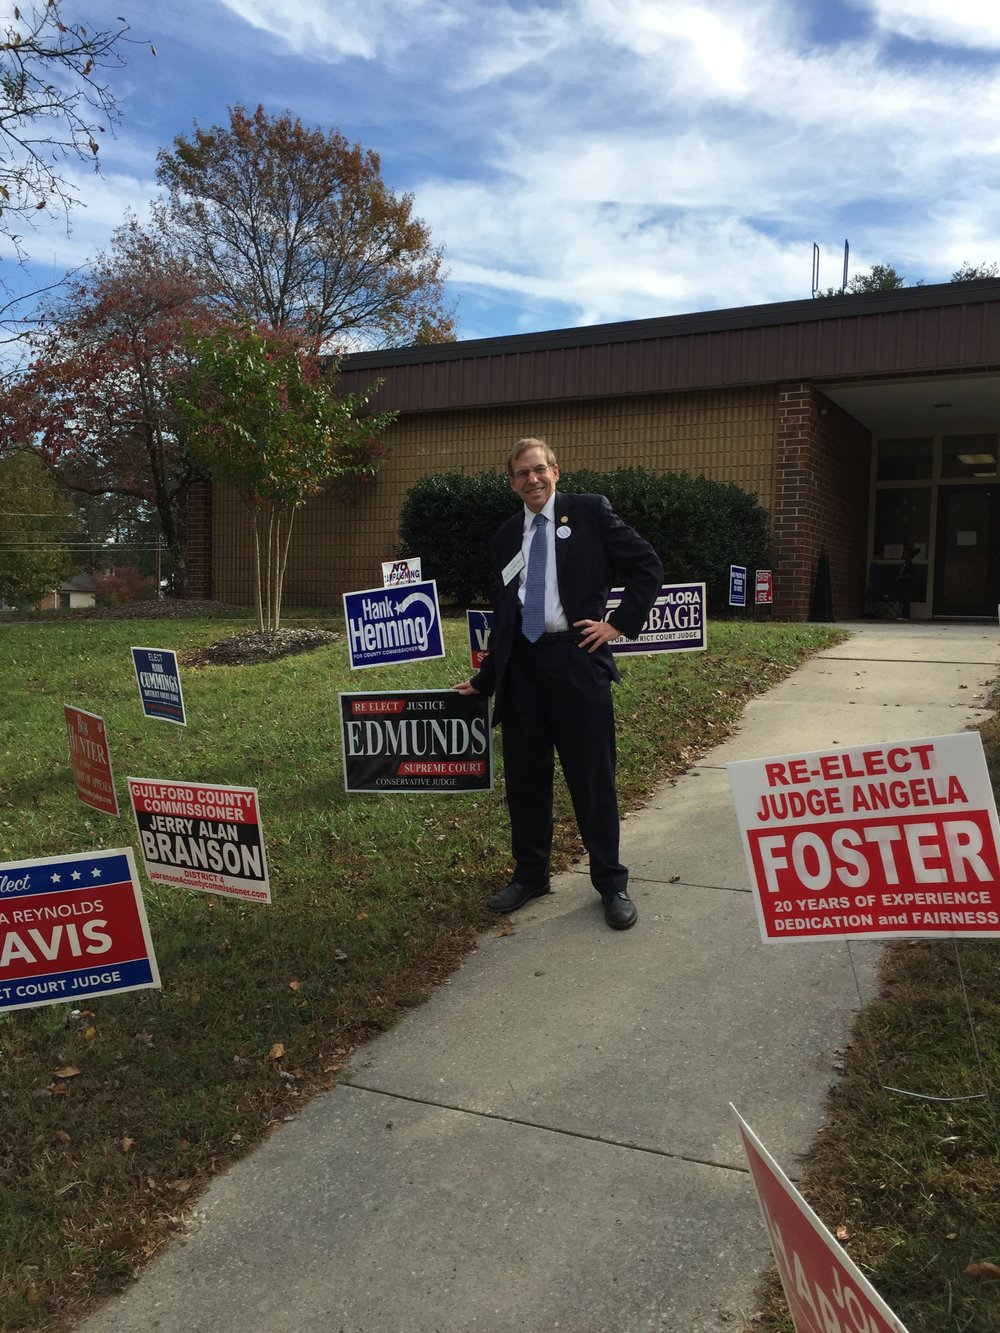 At early voting location in Greensboro, October 30, 2016.